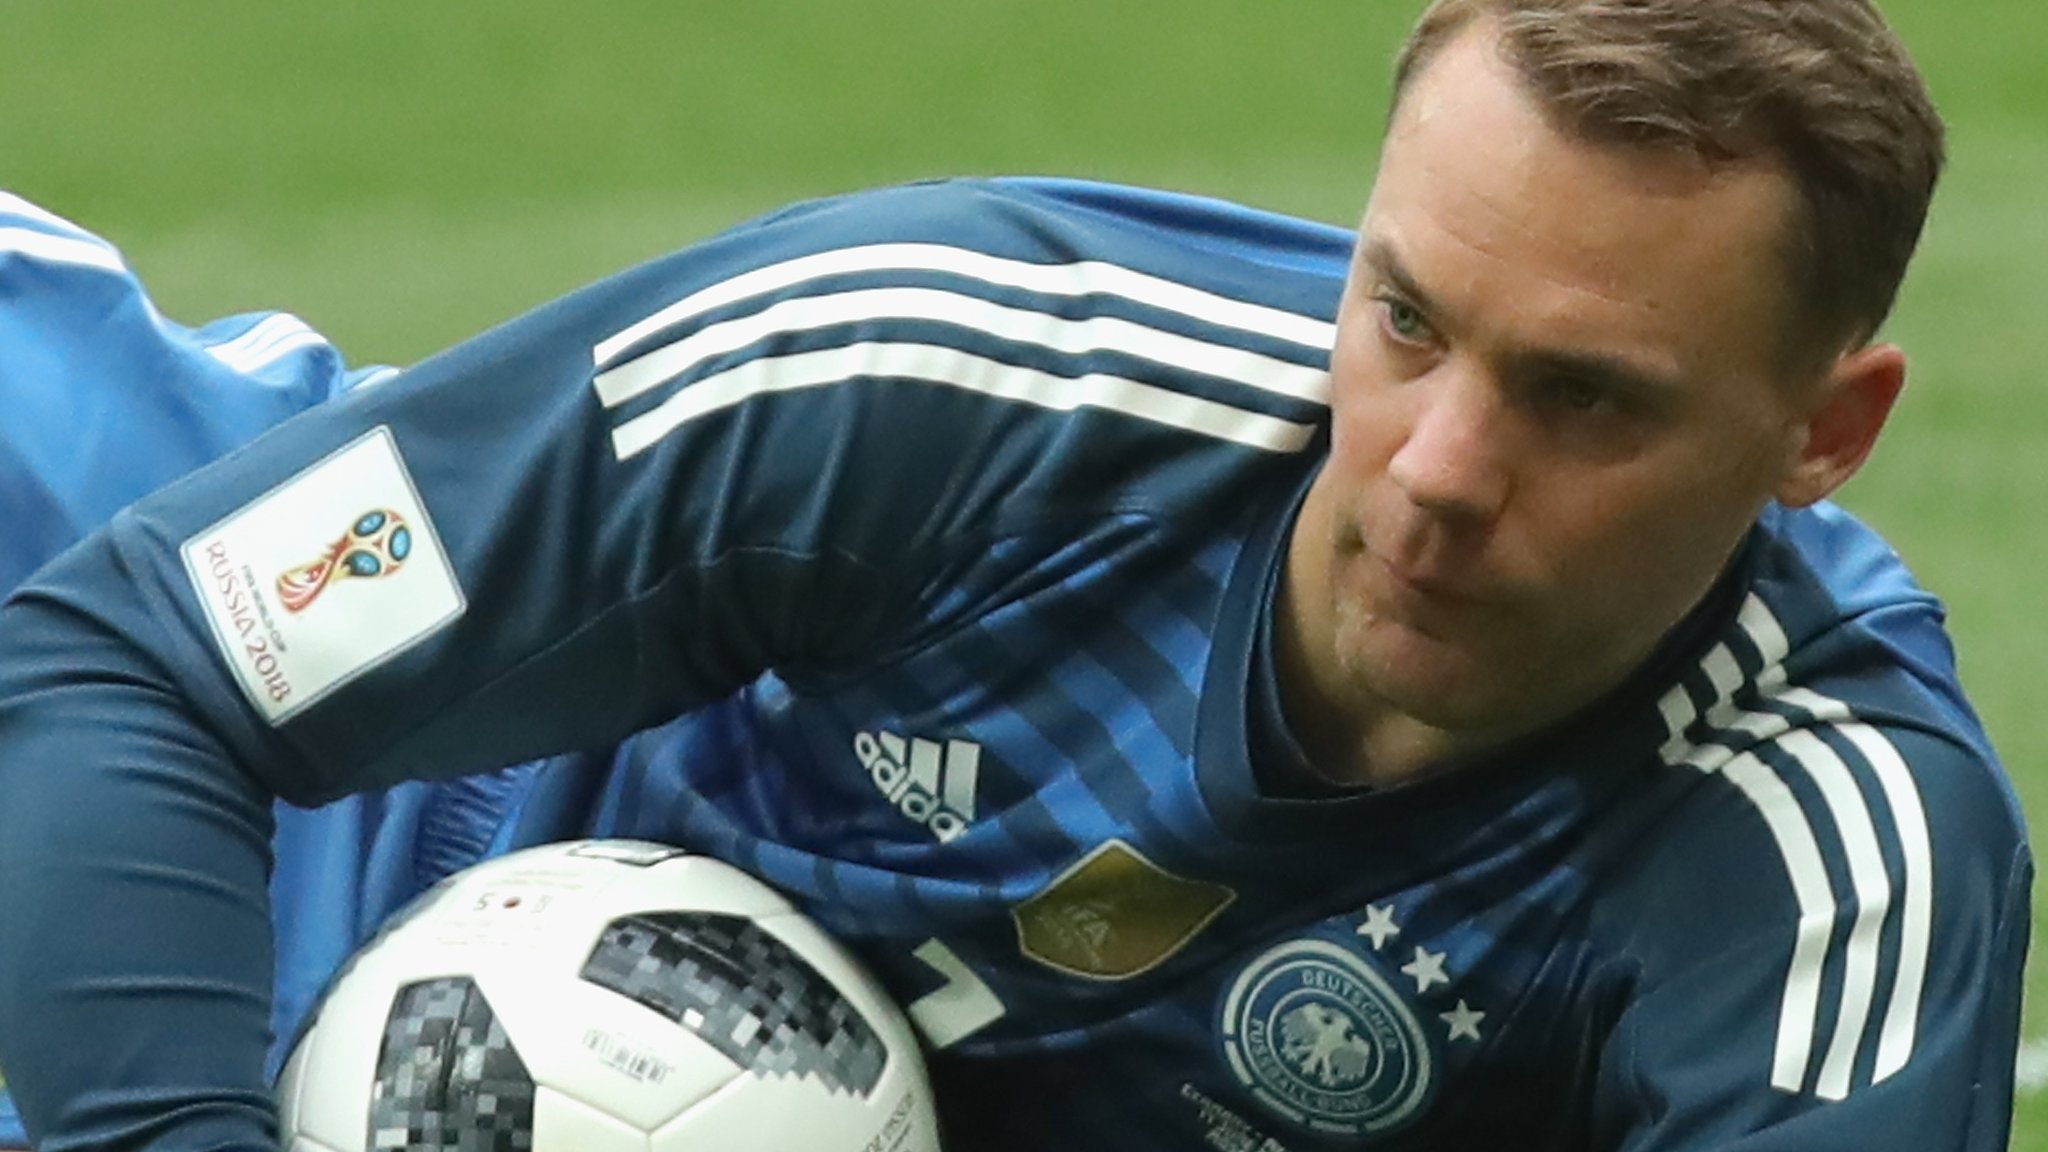 World Cup 2018: Germany do not need to change team - Manuel Neuer